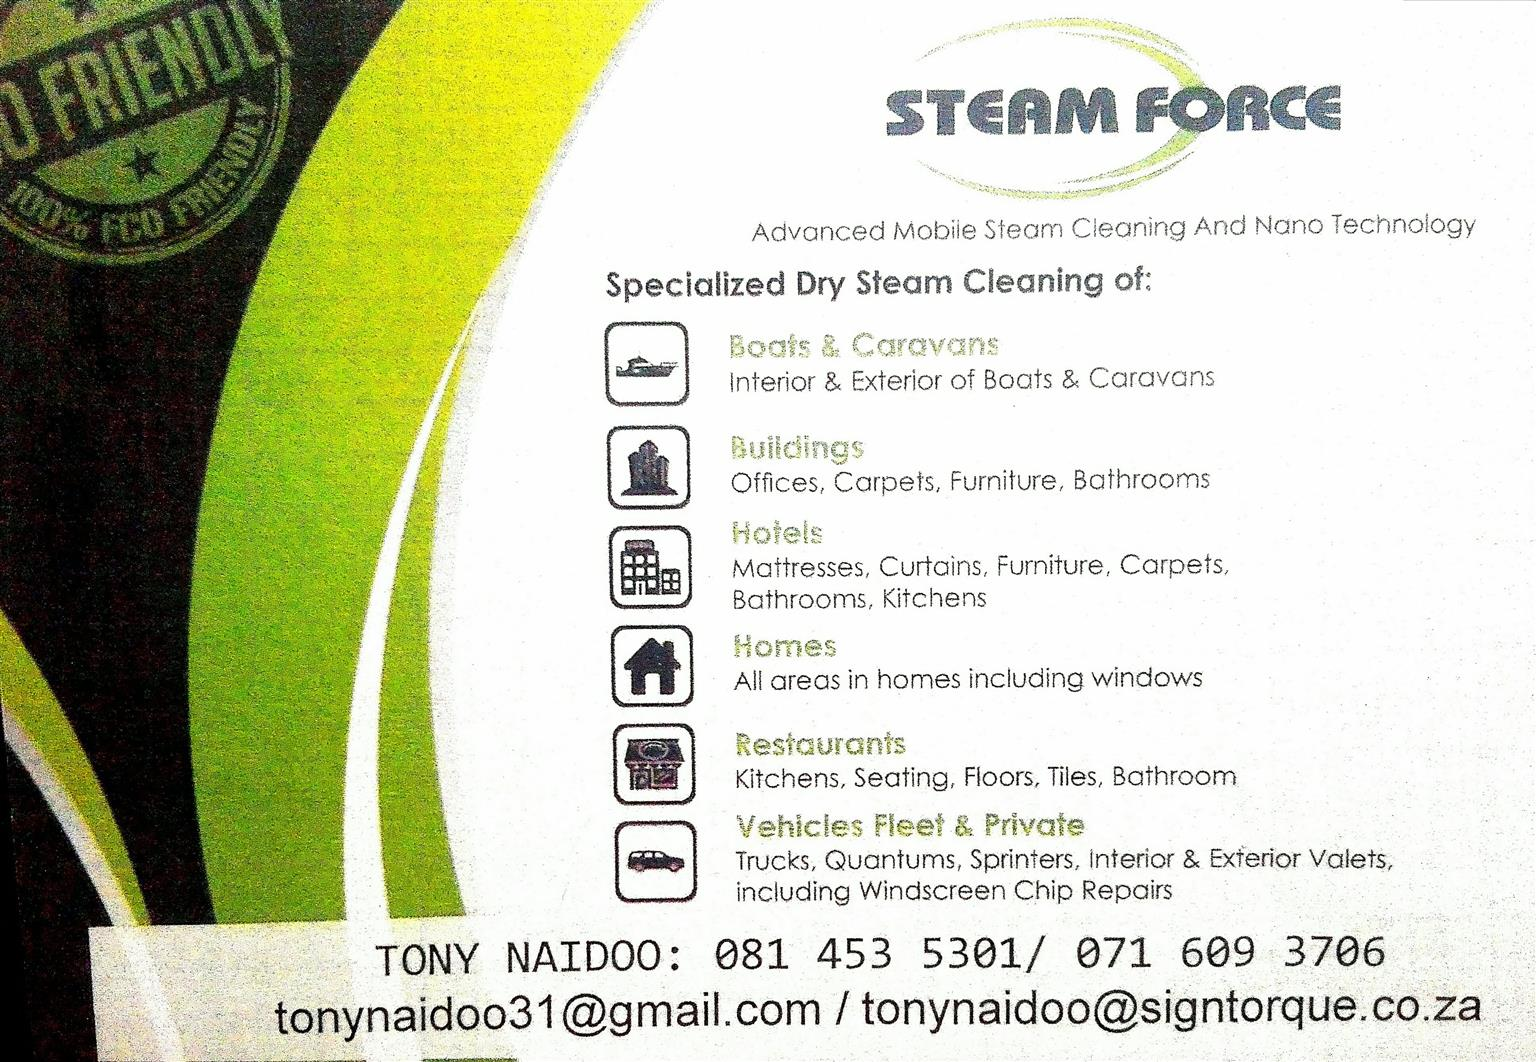 Deep Dry Steam Cleaning Services Sanitizing And